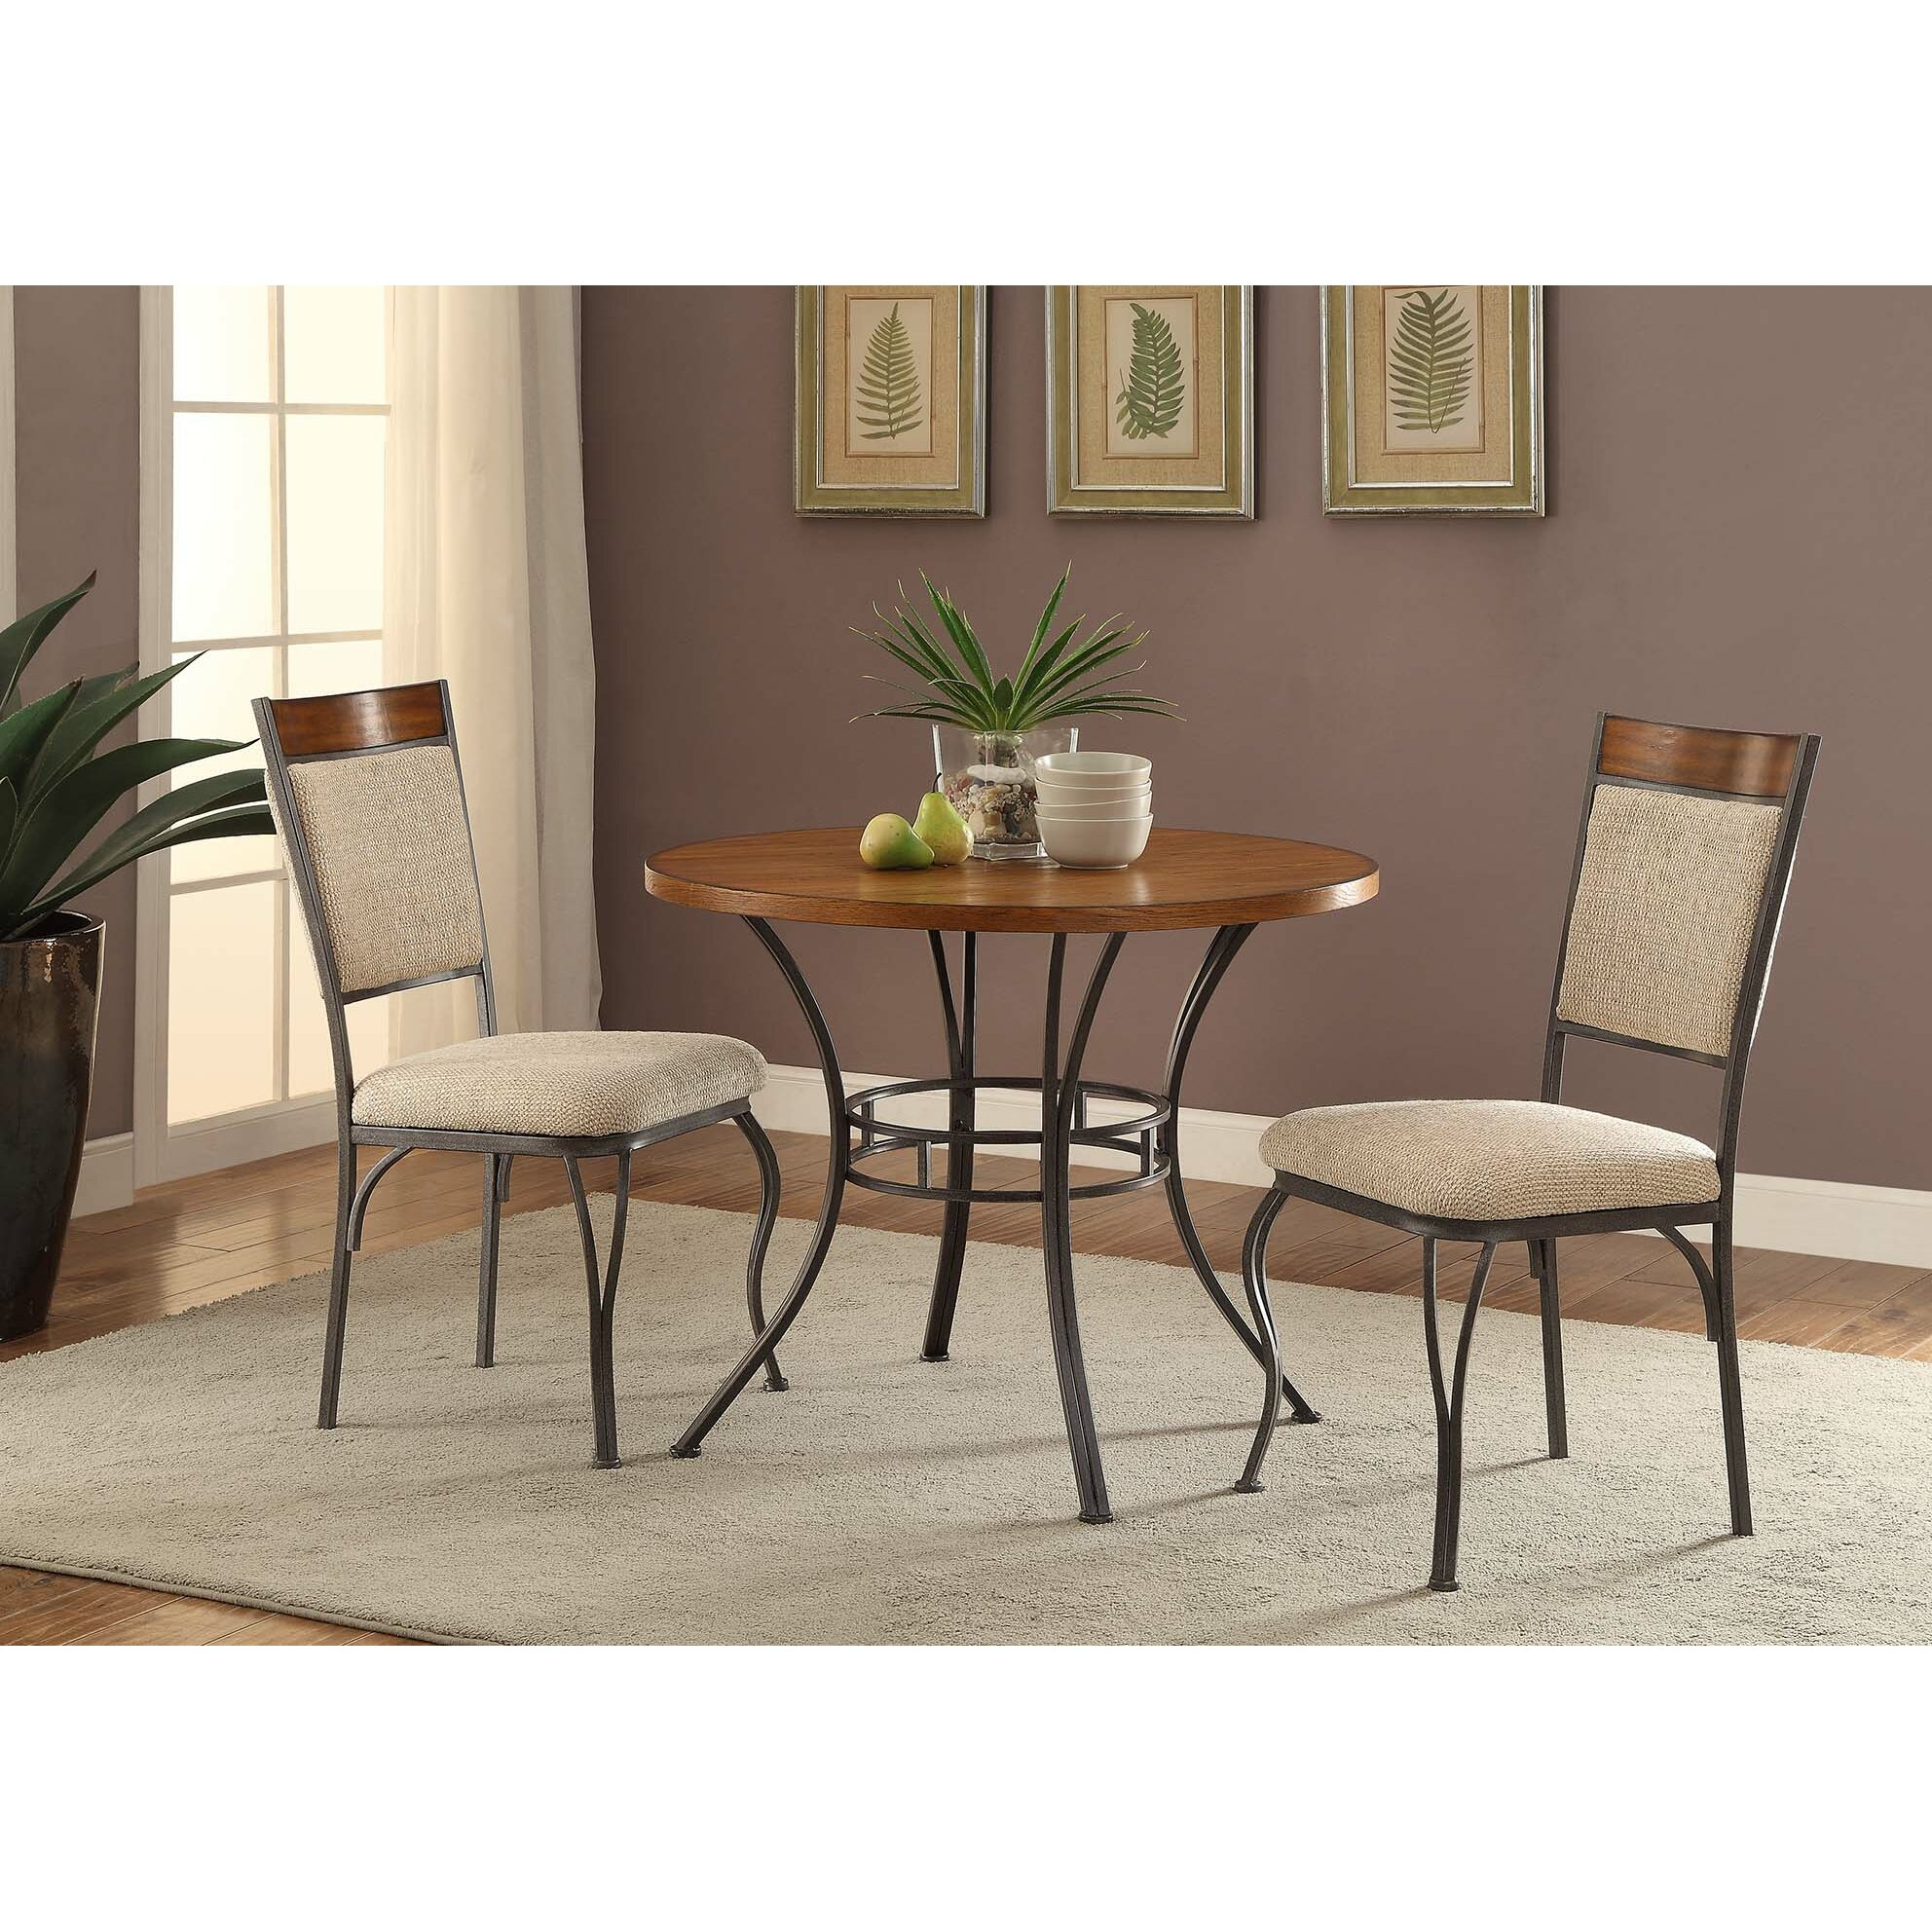 Anthony California 3 Piece Dining Set Amp Reviews Wayfair